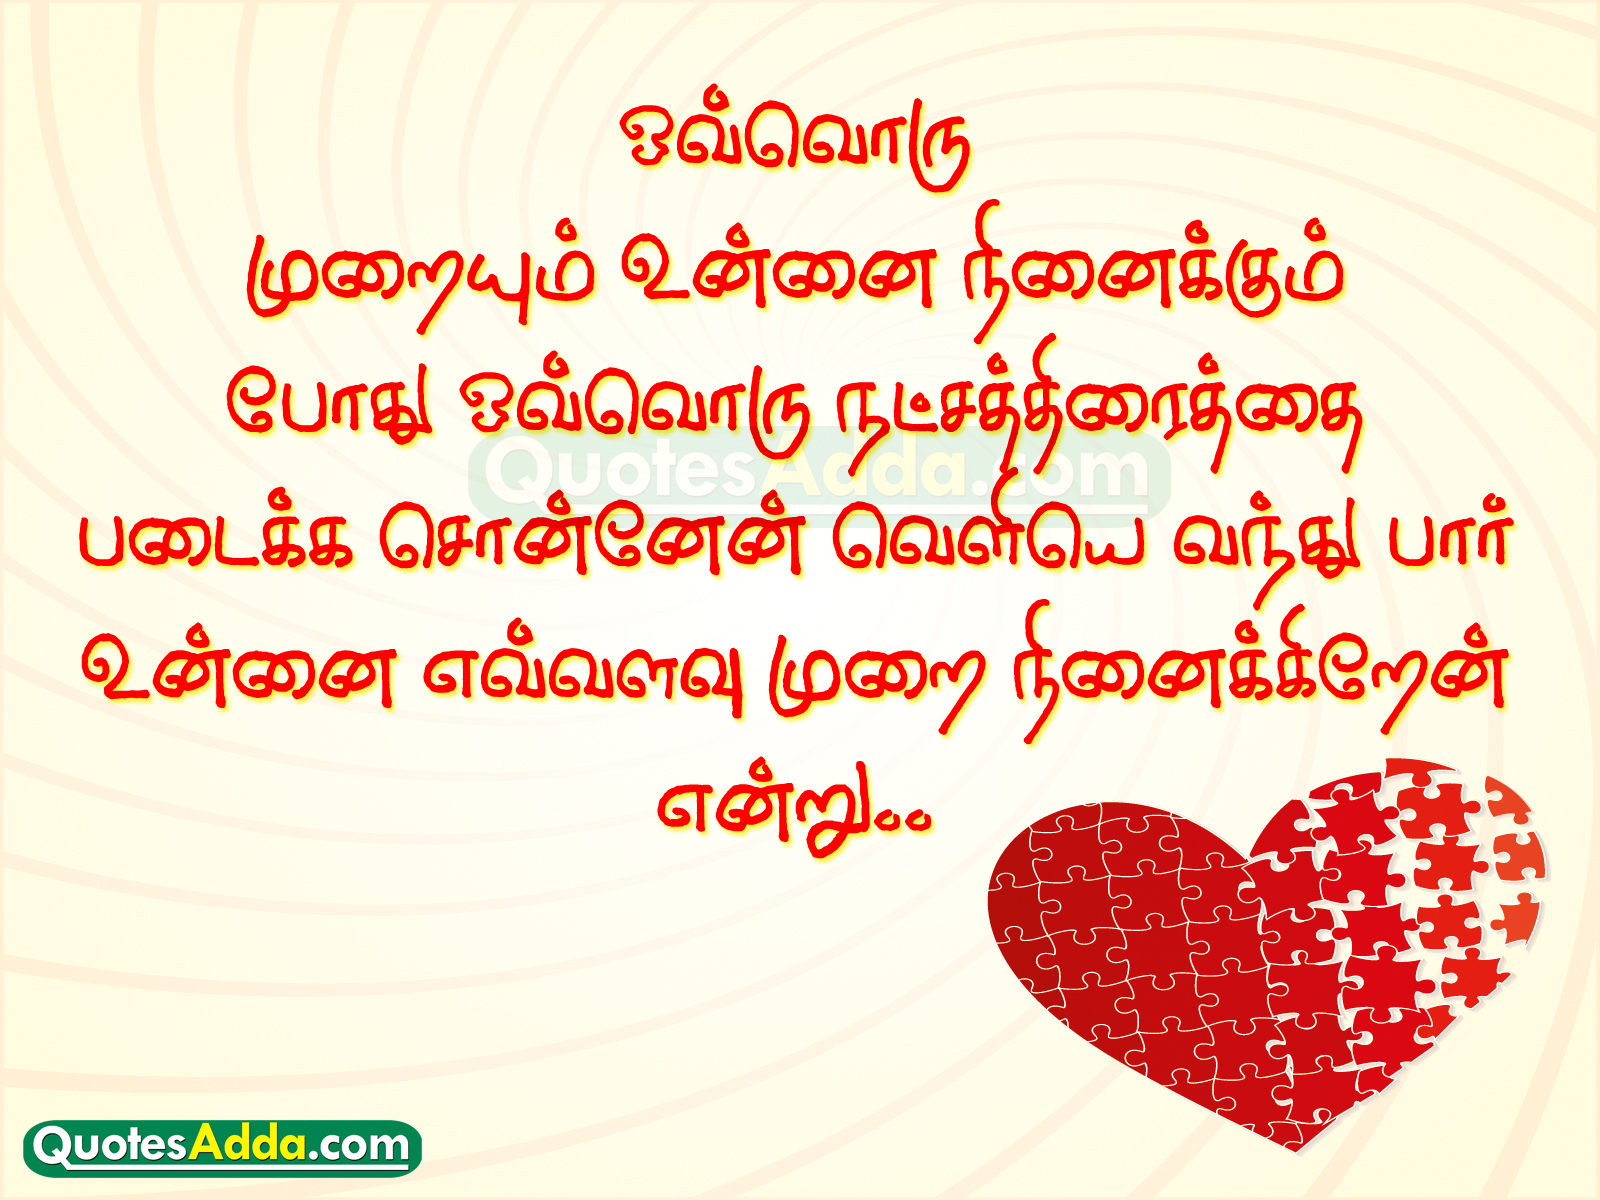 Sad Love Quotes Images Pictures In Tamil : Tamil Love Kavithai in Tamil Font Sad Tamil Love Kavithai Tamil